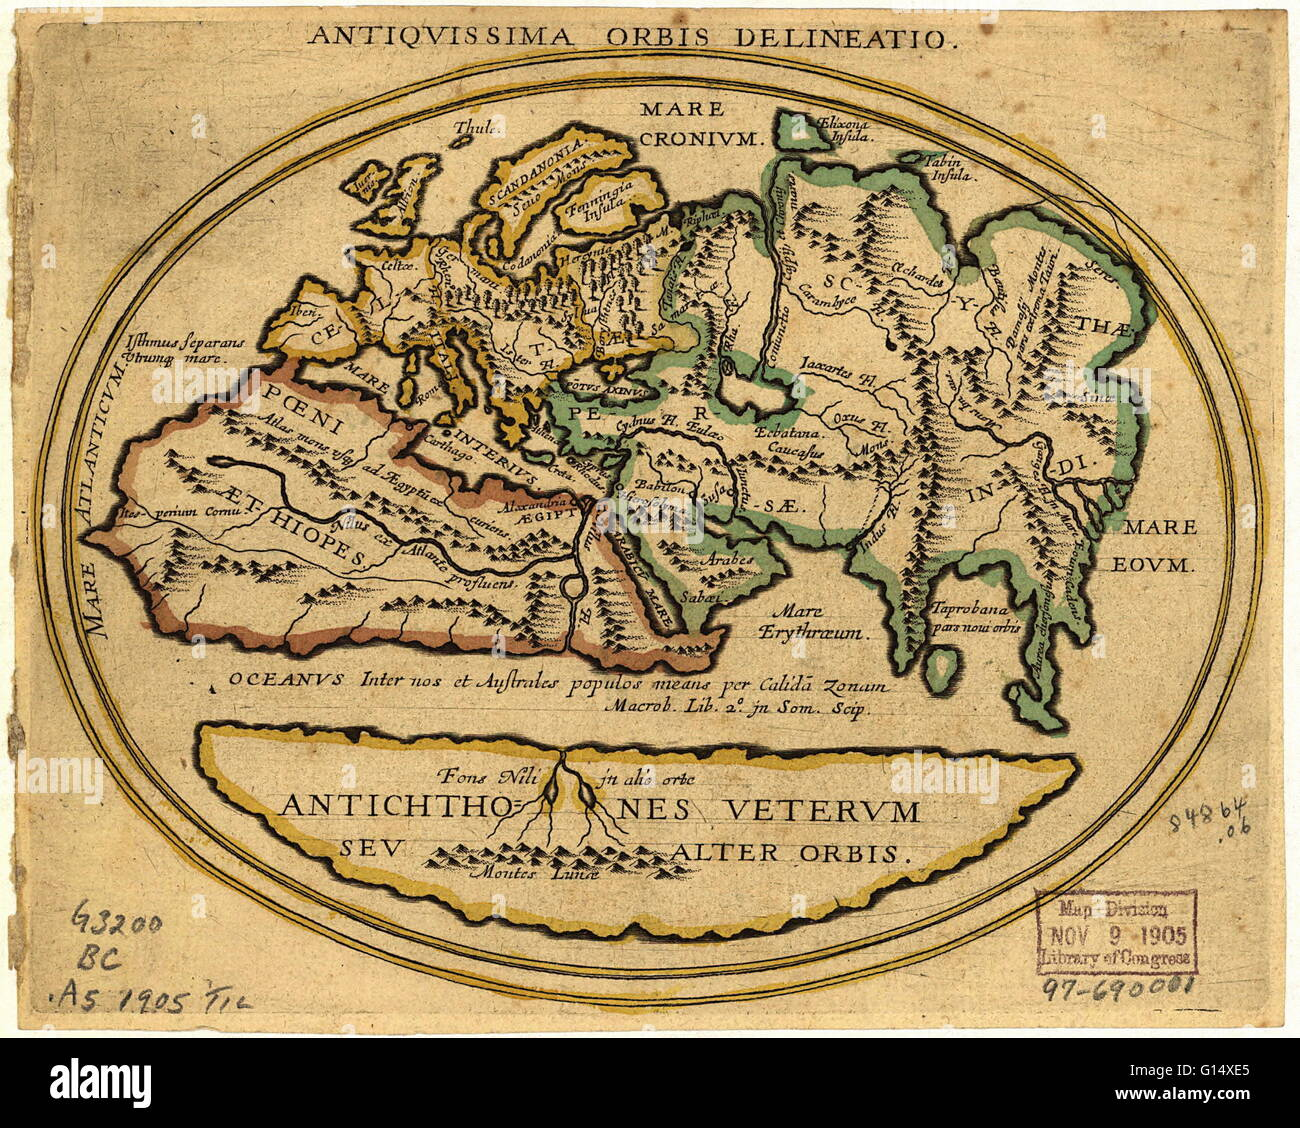 Map of the old world with latin text the title is antiquissima map of the old world with latin text the title is antiquissima orbis delineatio ancient world map the level of geographical knowledge is similar to that gumiabroncs Images